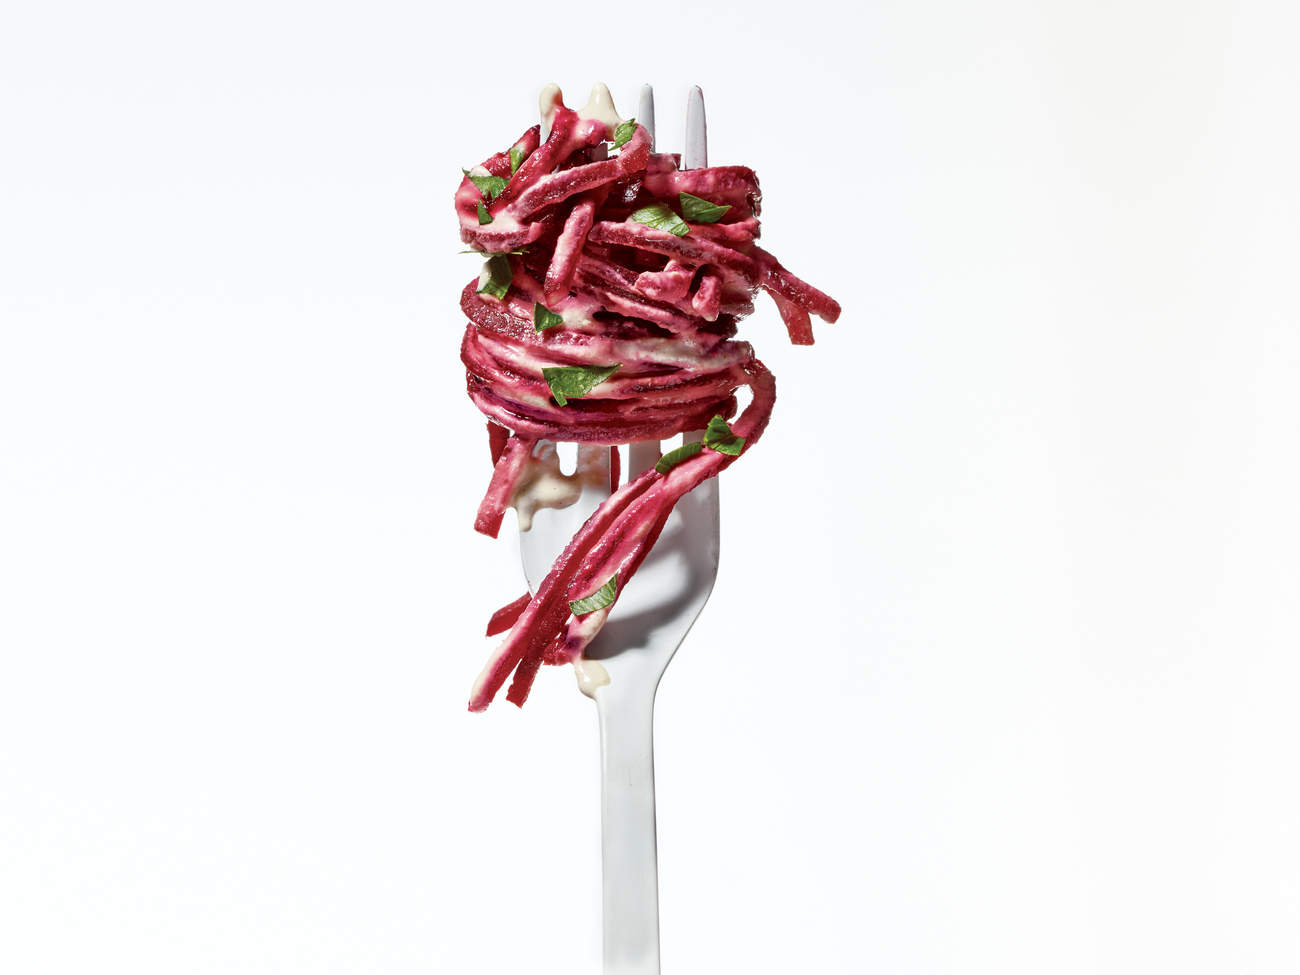 beet noodles detox deliciously on fork